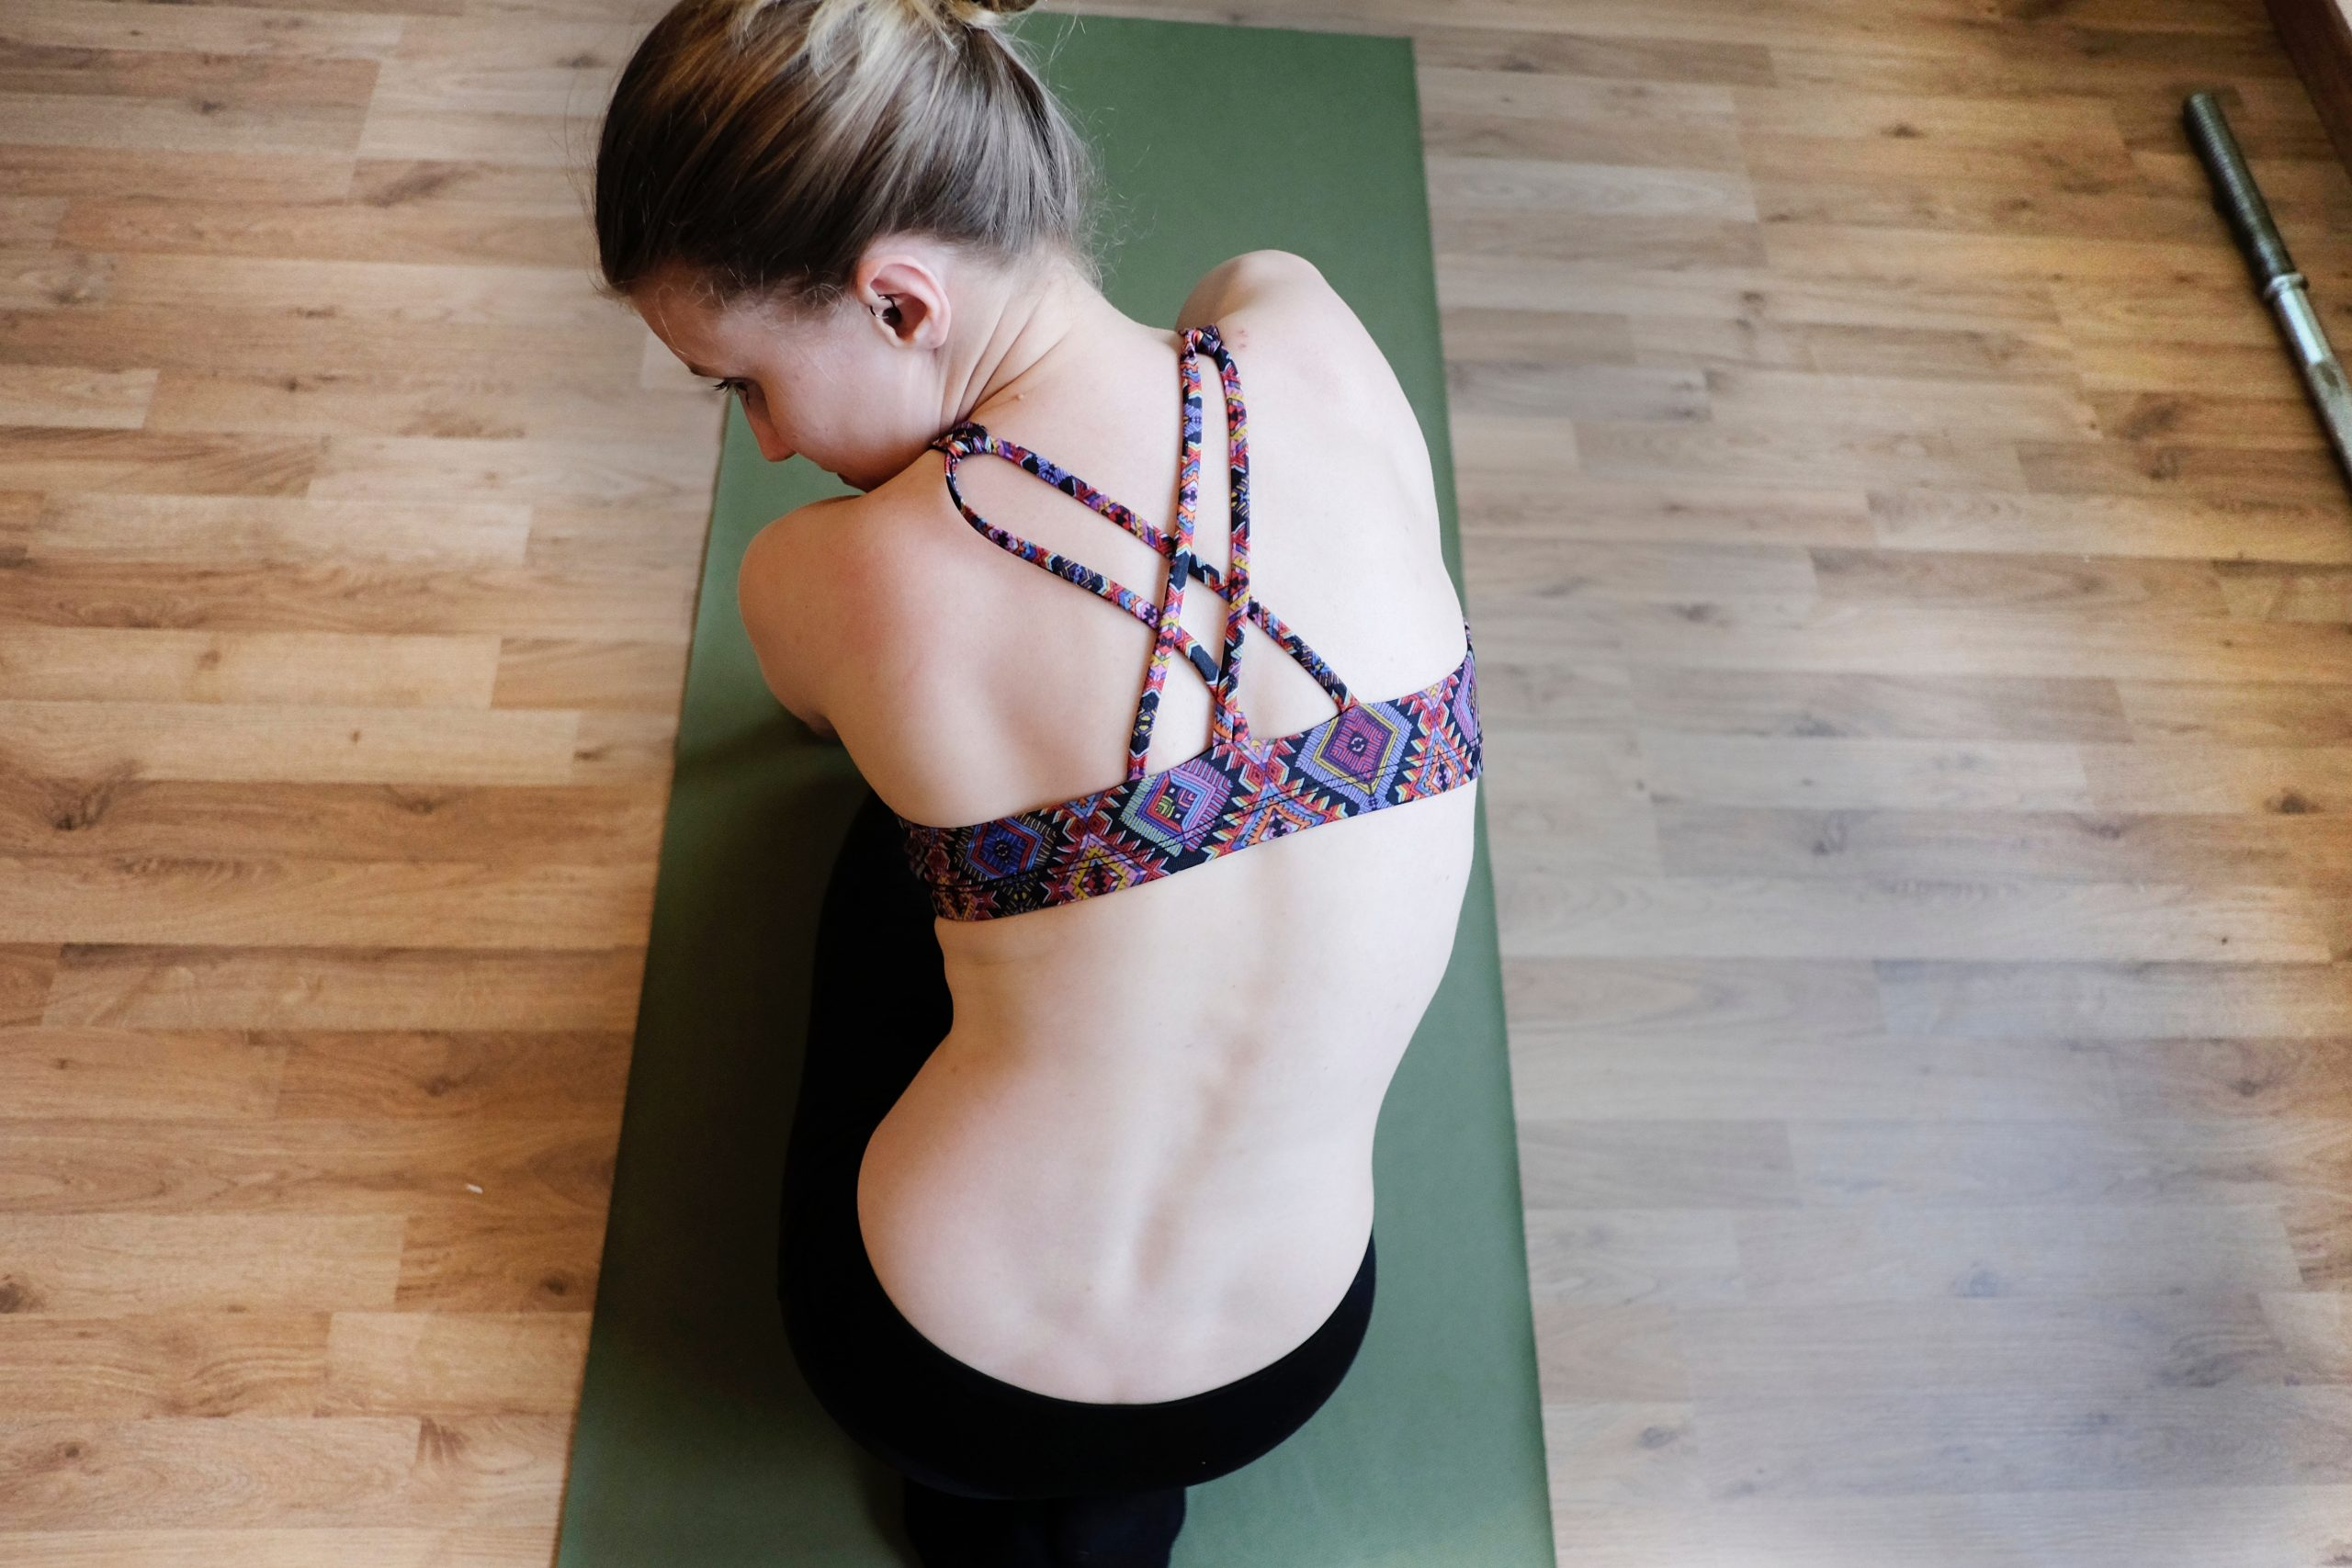 Is yoga a proper treatment for your back pain?